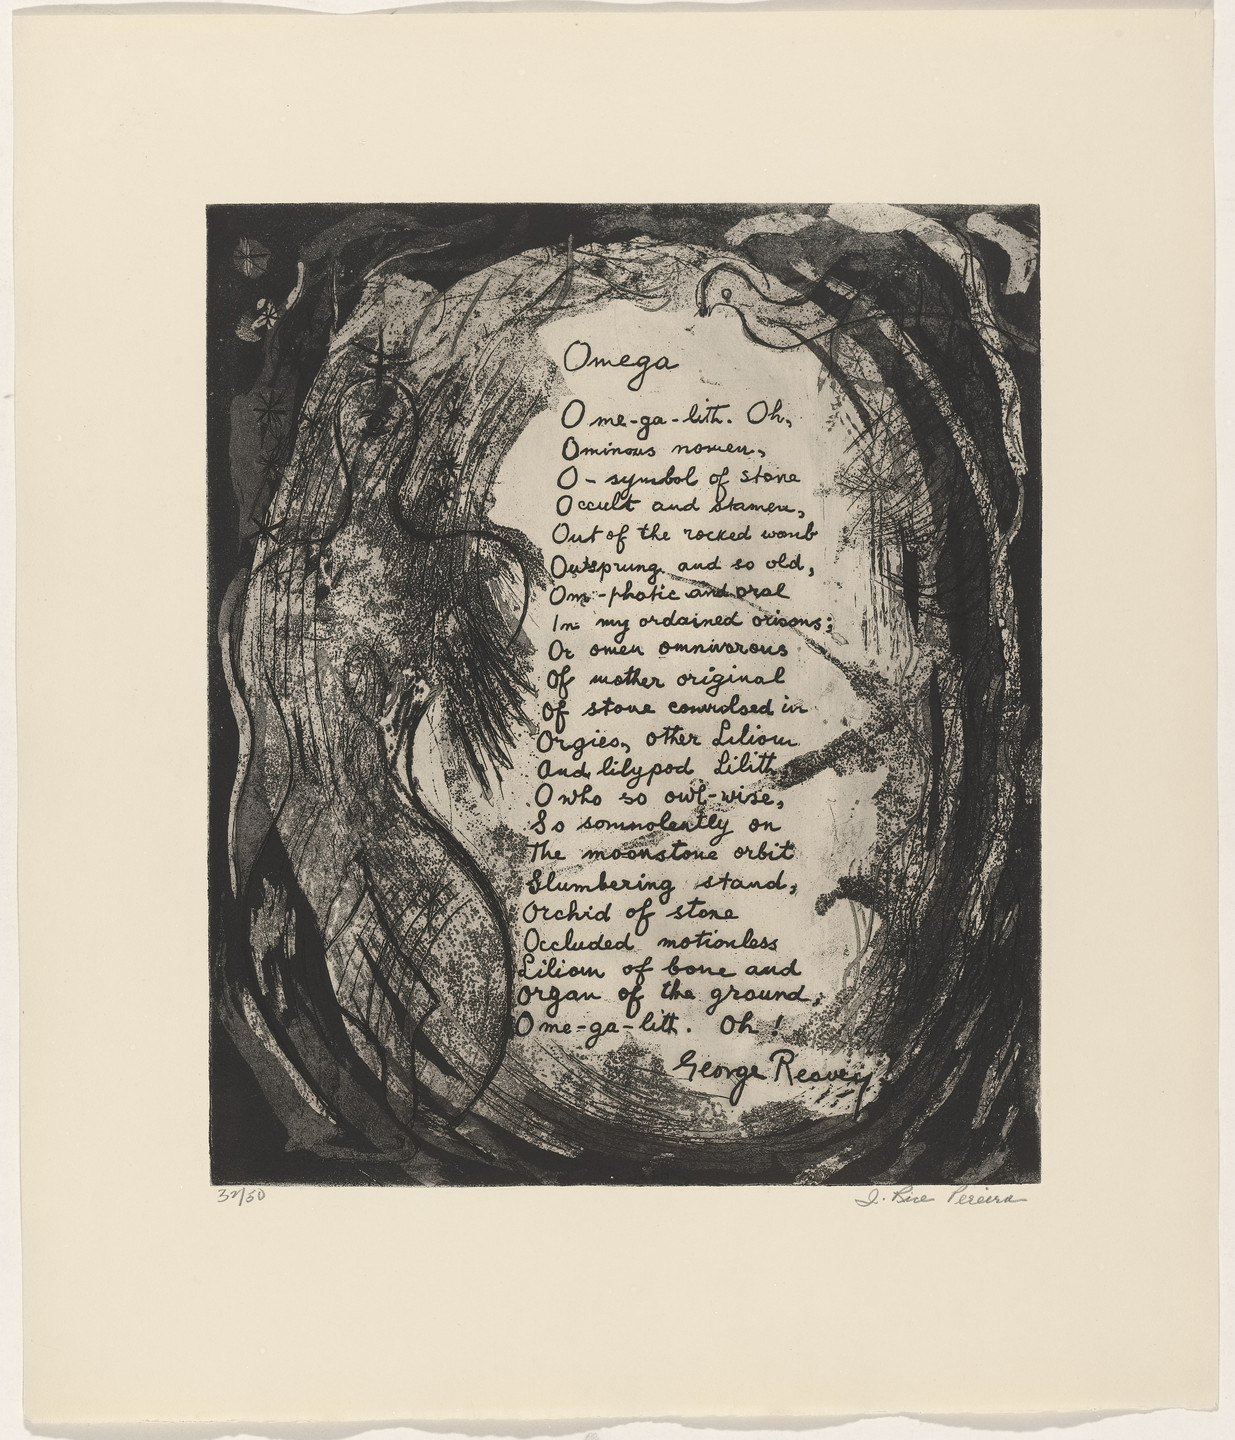 Irene Rice Pereira, George Reavey. In-text plate (folio 16) from 21 Etchings and Poems. 1960